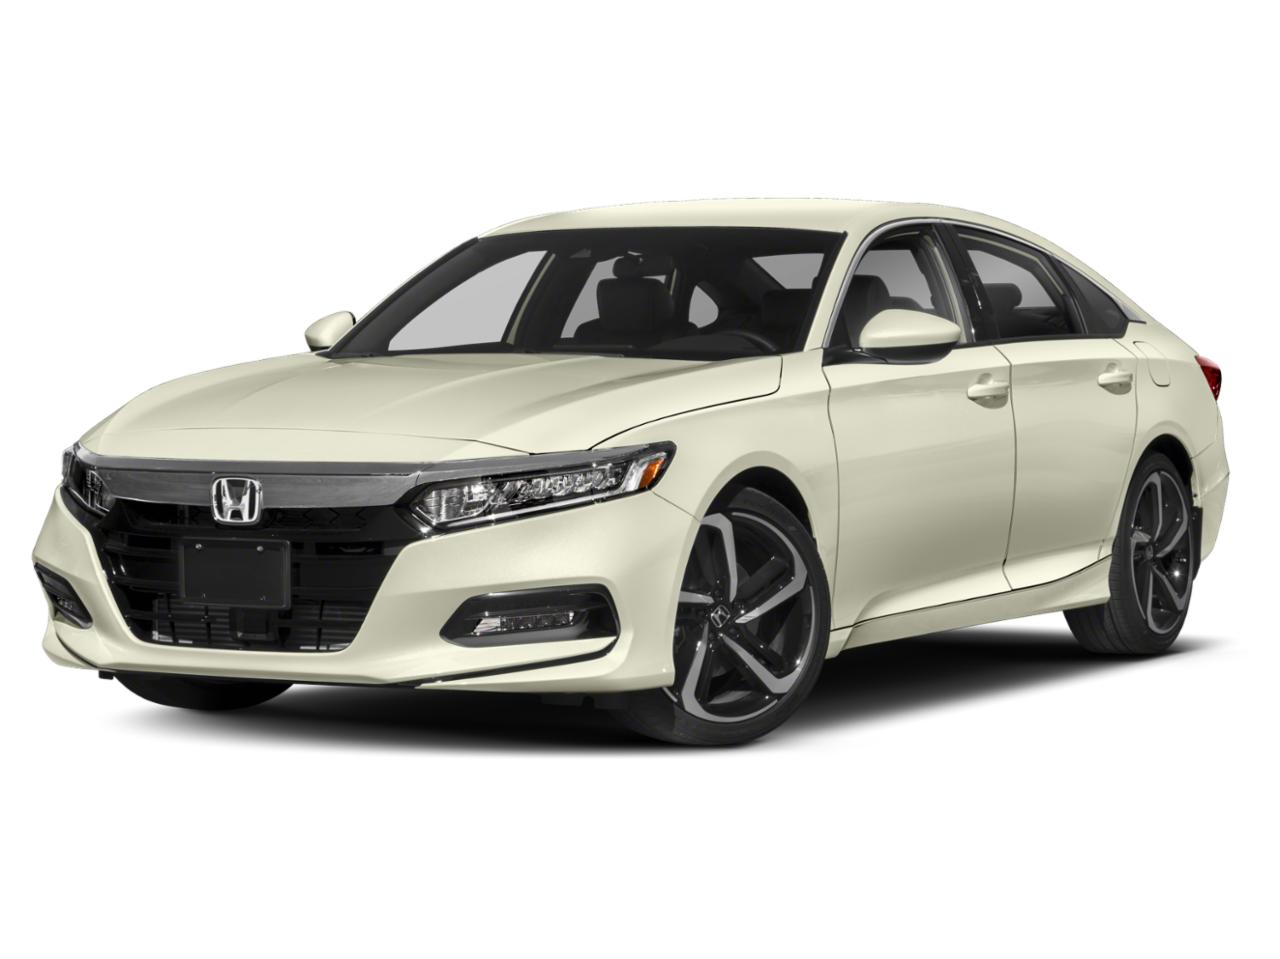 2018 Honda Accord Sedan Vehicle Photo in Baton Rouge, LA 70806